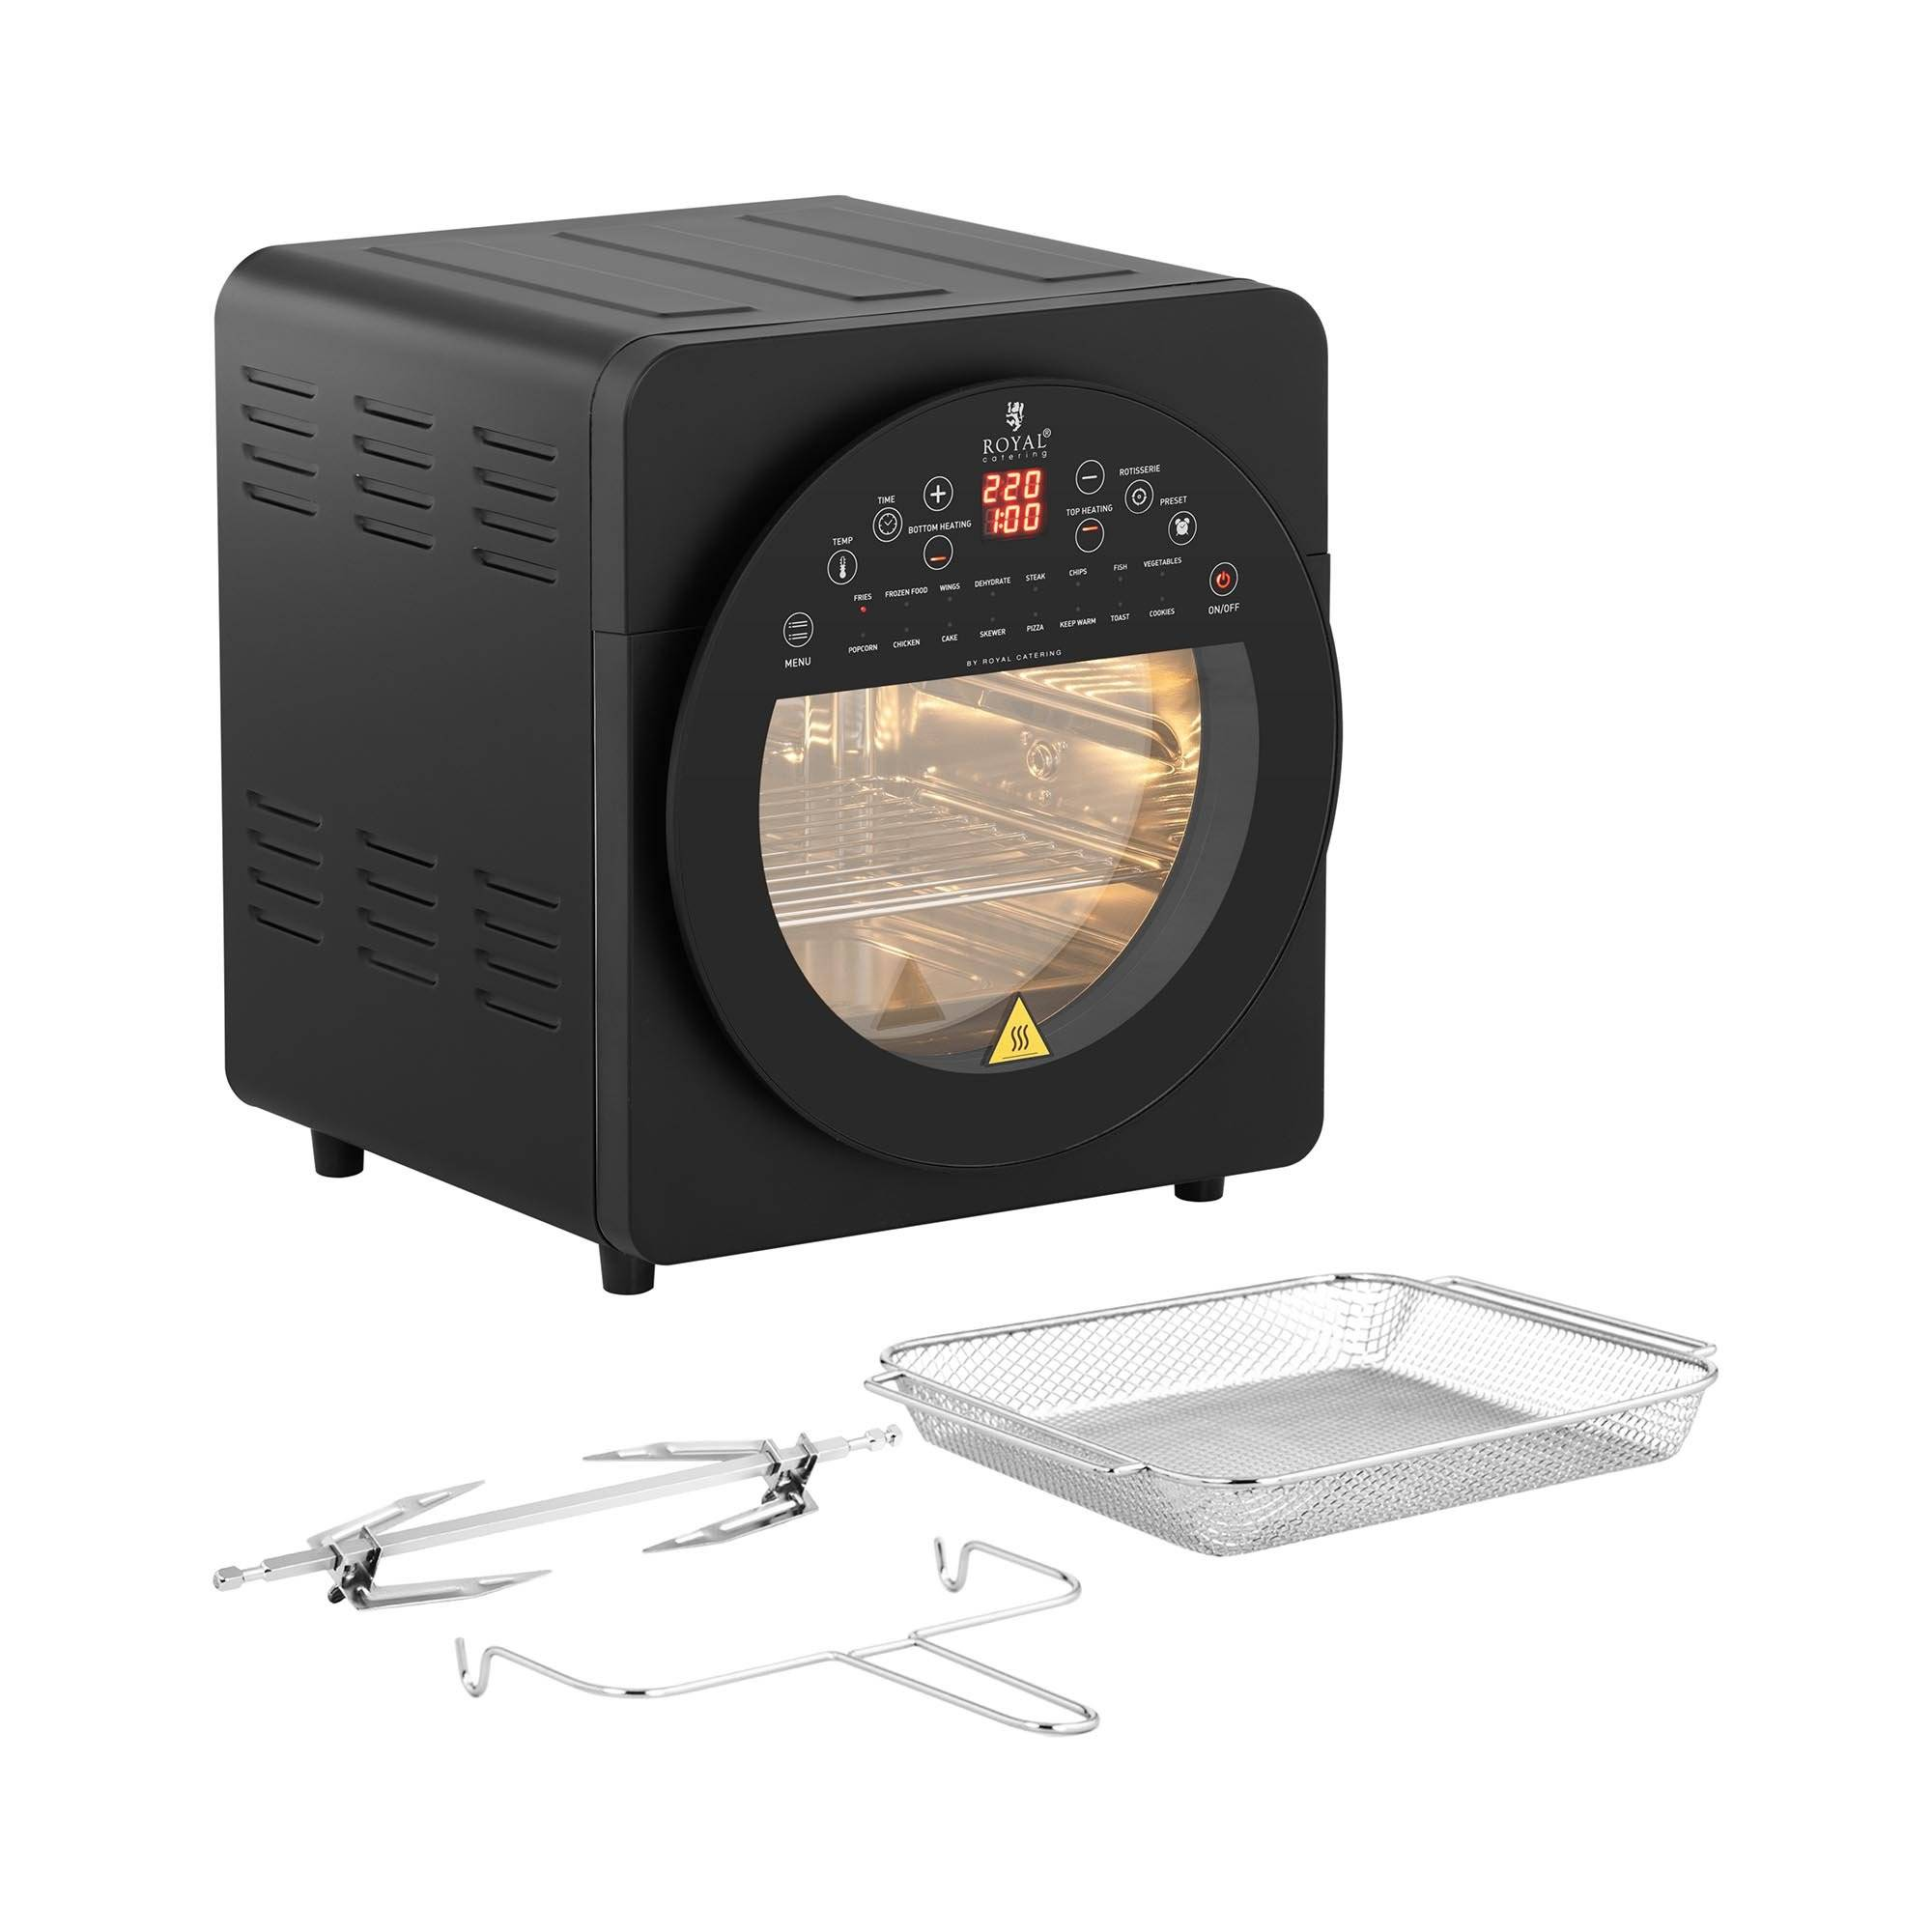 Royal Catering Countertop Convection Oven - 1,700 W - 12 programmes - incl. oven rack, baking sheet, rotisserie and drip tray RCAF-14L